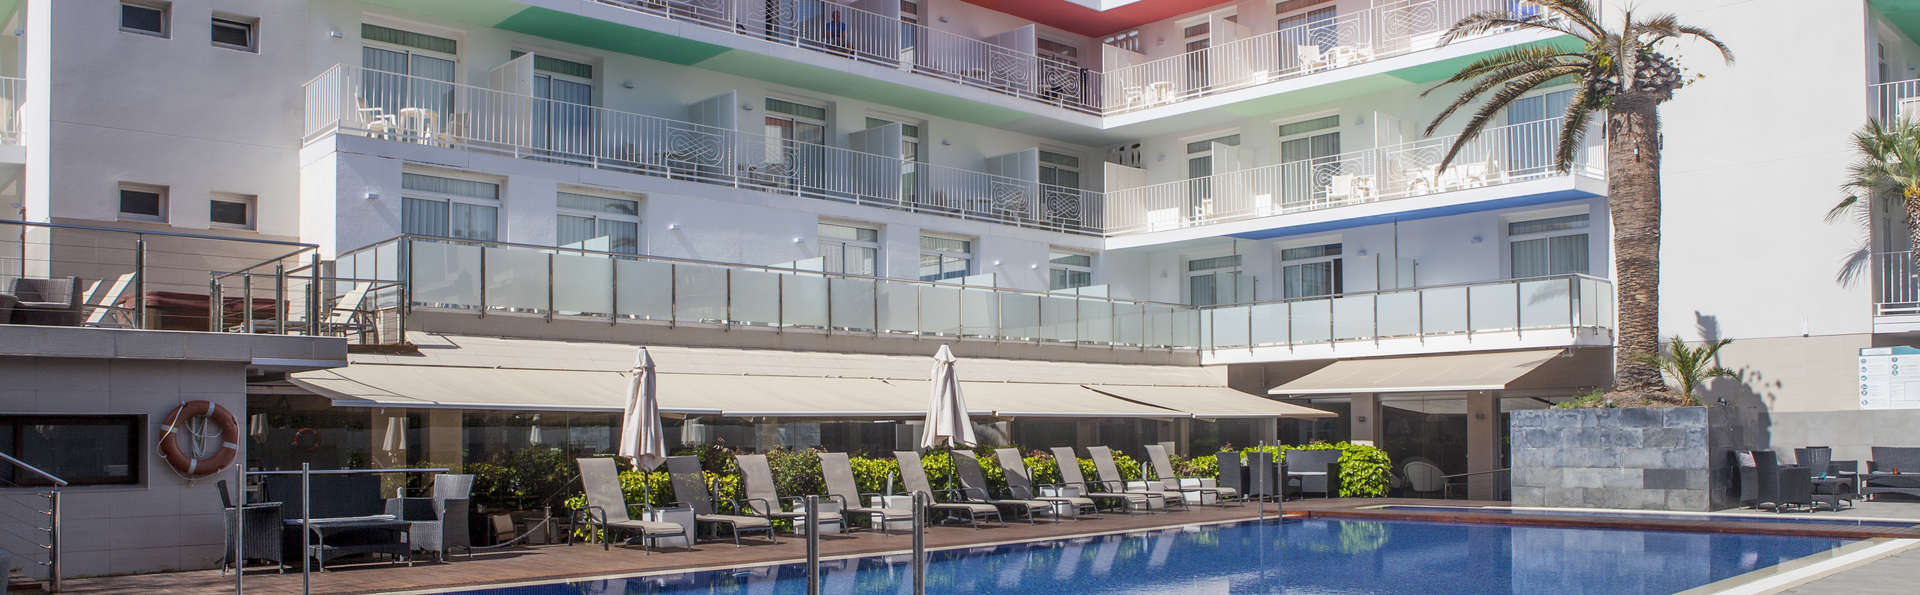 Hotel Ibersol Antemare (ADULTS ONLY) - _MG_0254.jpg